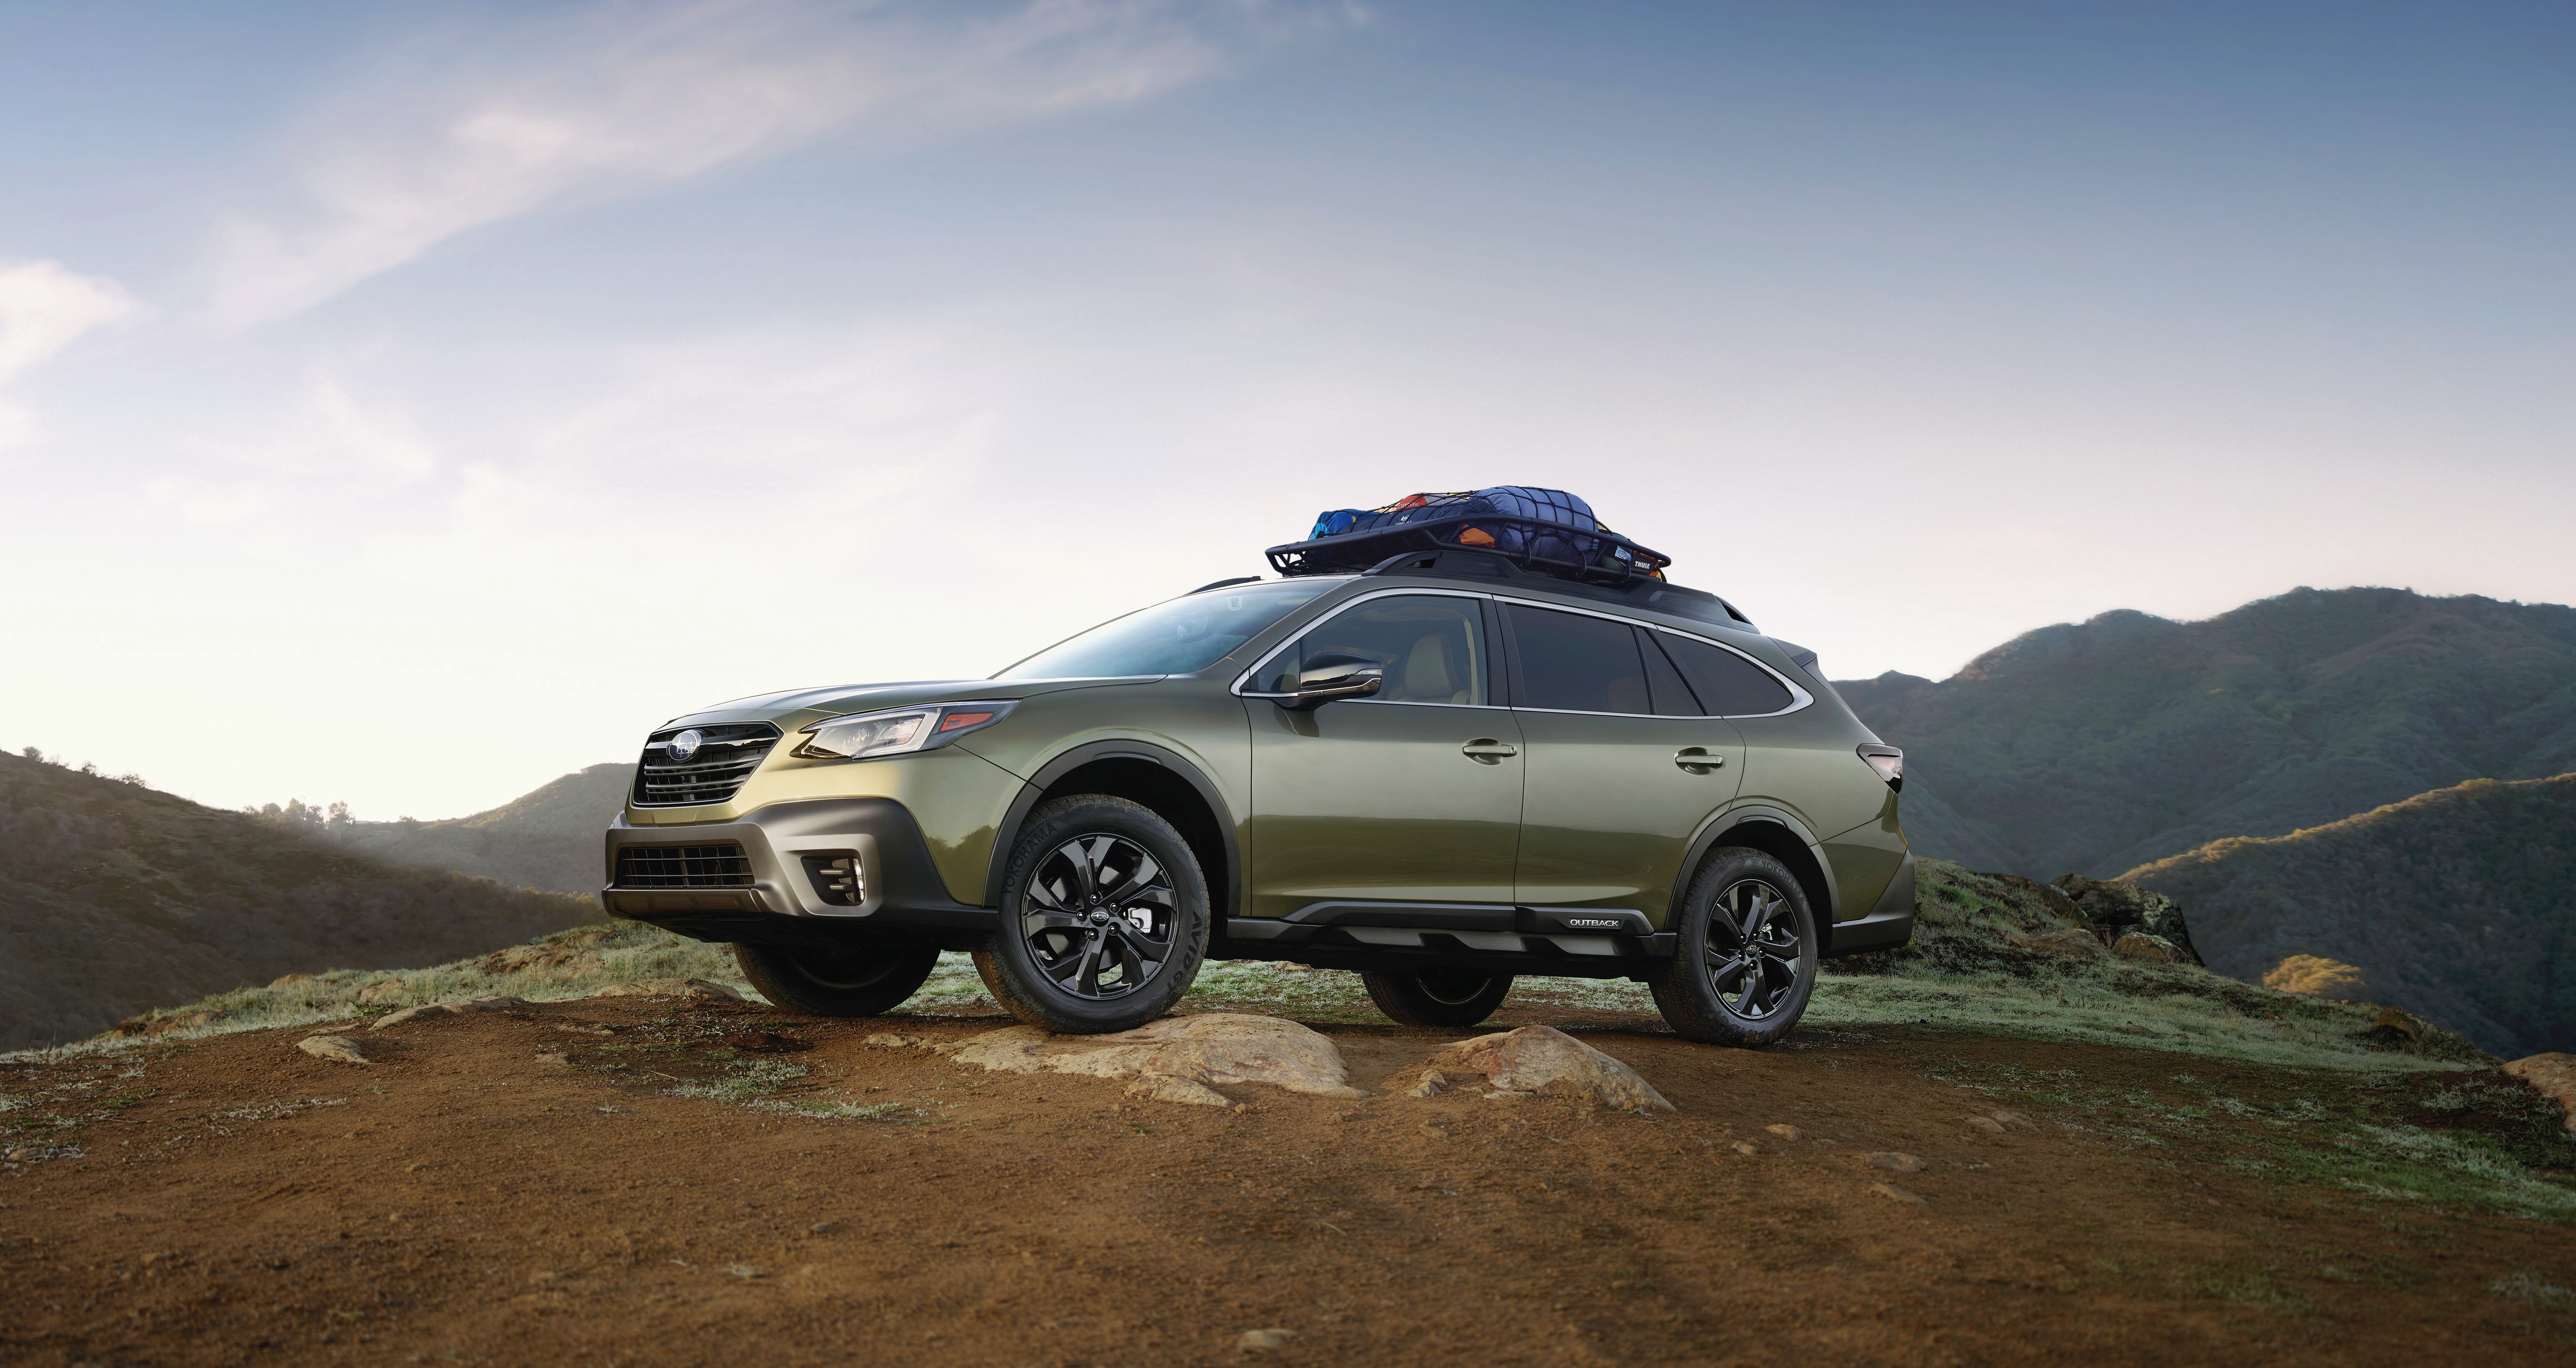 Subaru Outback revamped for 2020, with facial recognition, revealed at New York Auto Show